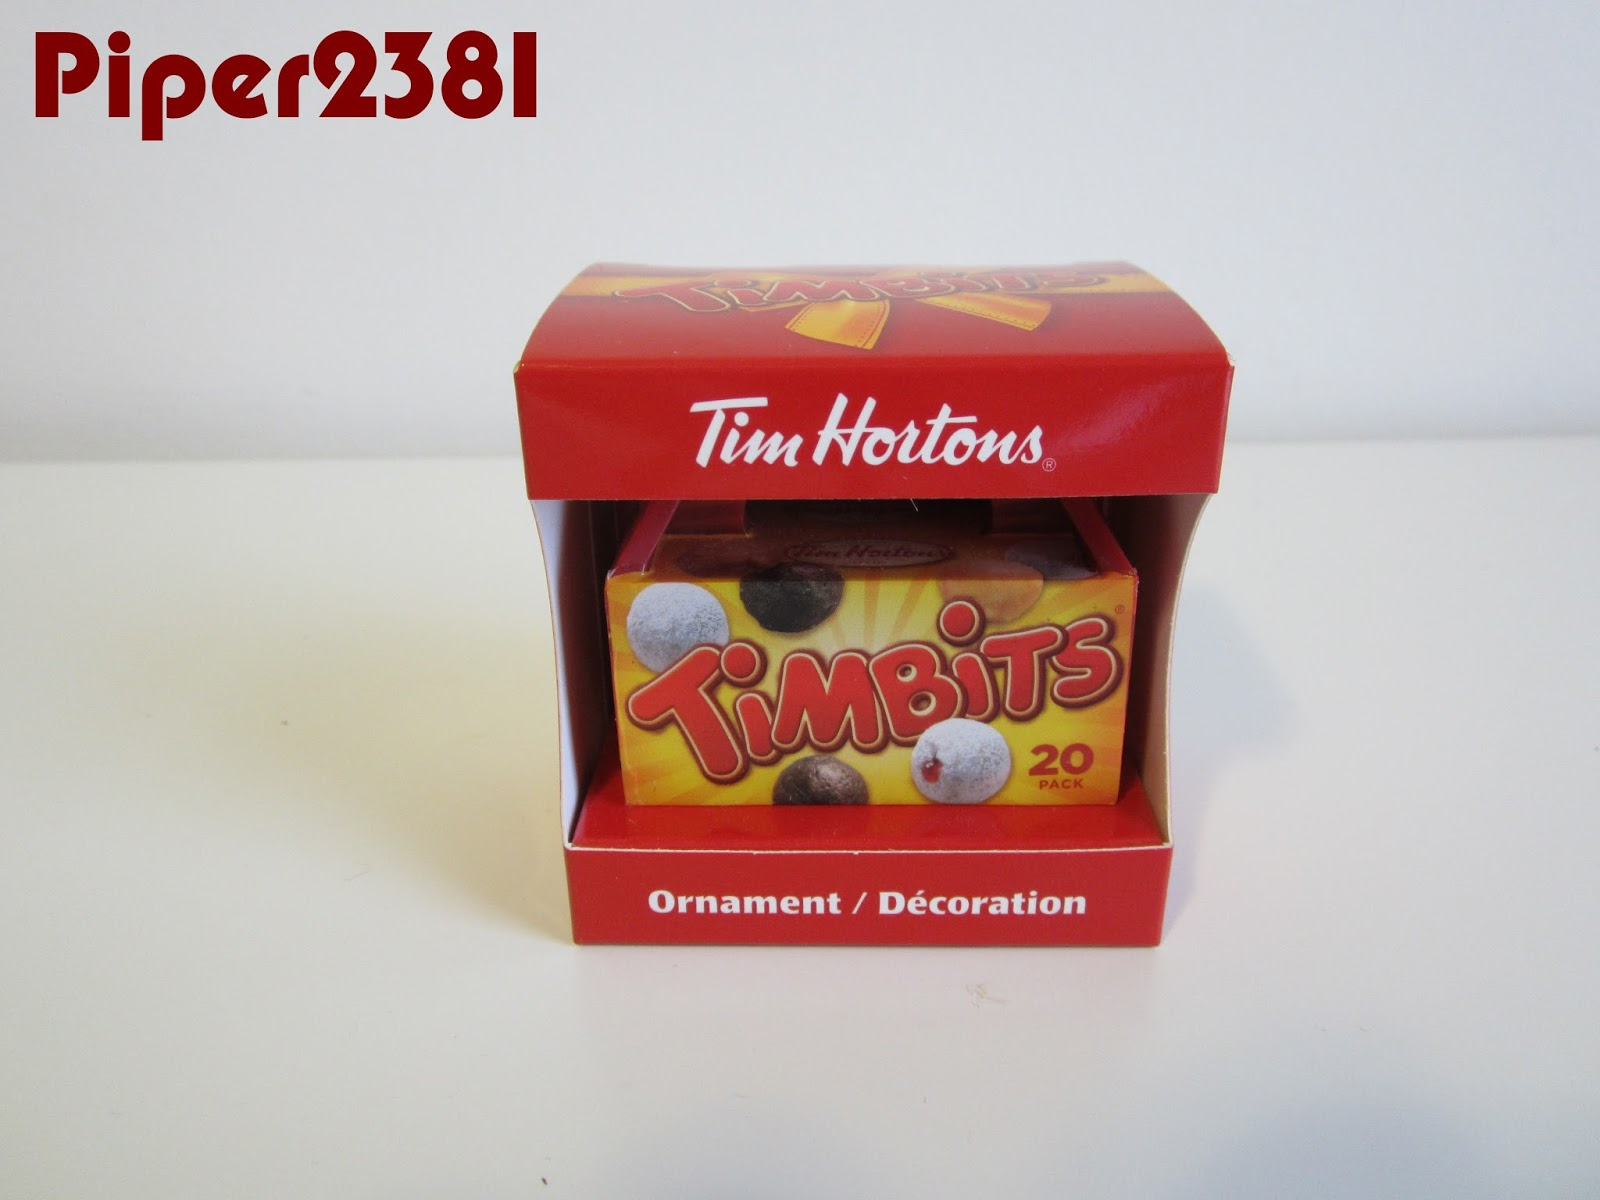 Toronto blue jays christmas ornament - This Year S Tim Hortons Christmas Ornament Is A Timbits Box It S An Exact Replica Of The Regular 20 Pack Box You Usually Get Throughout The Year Except